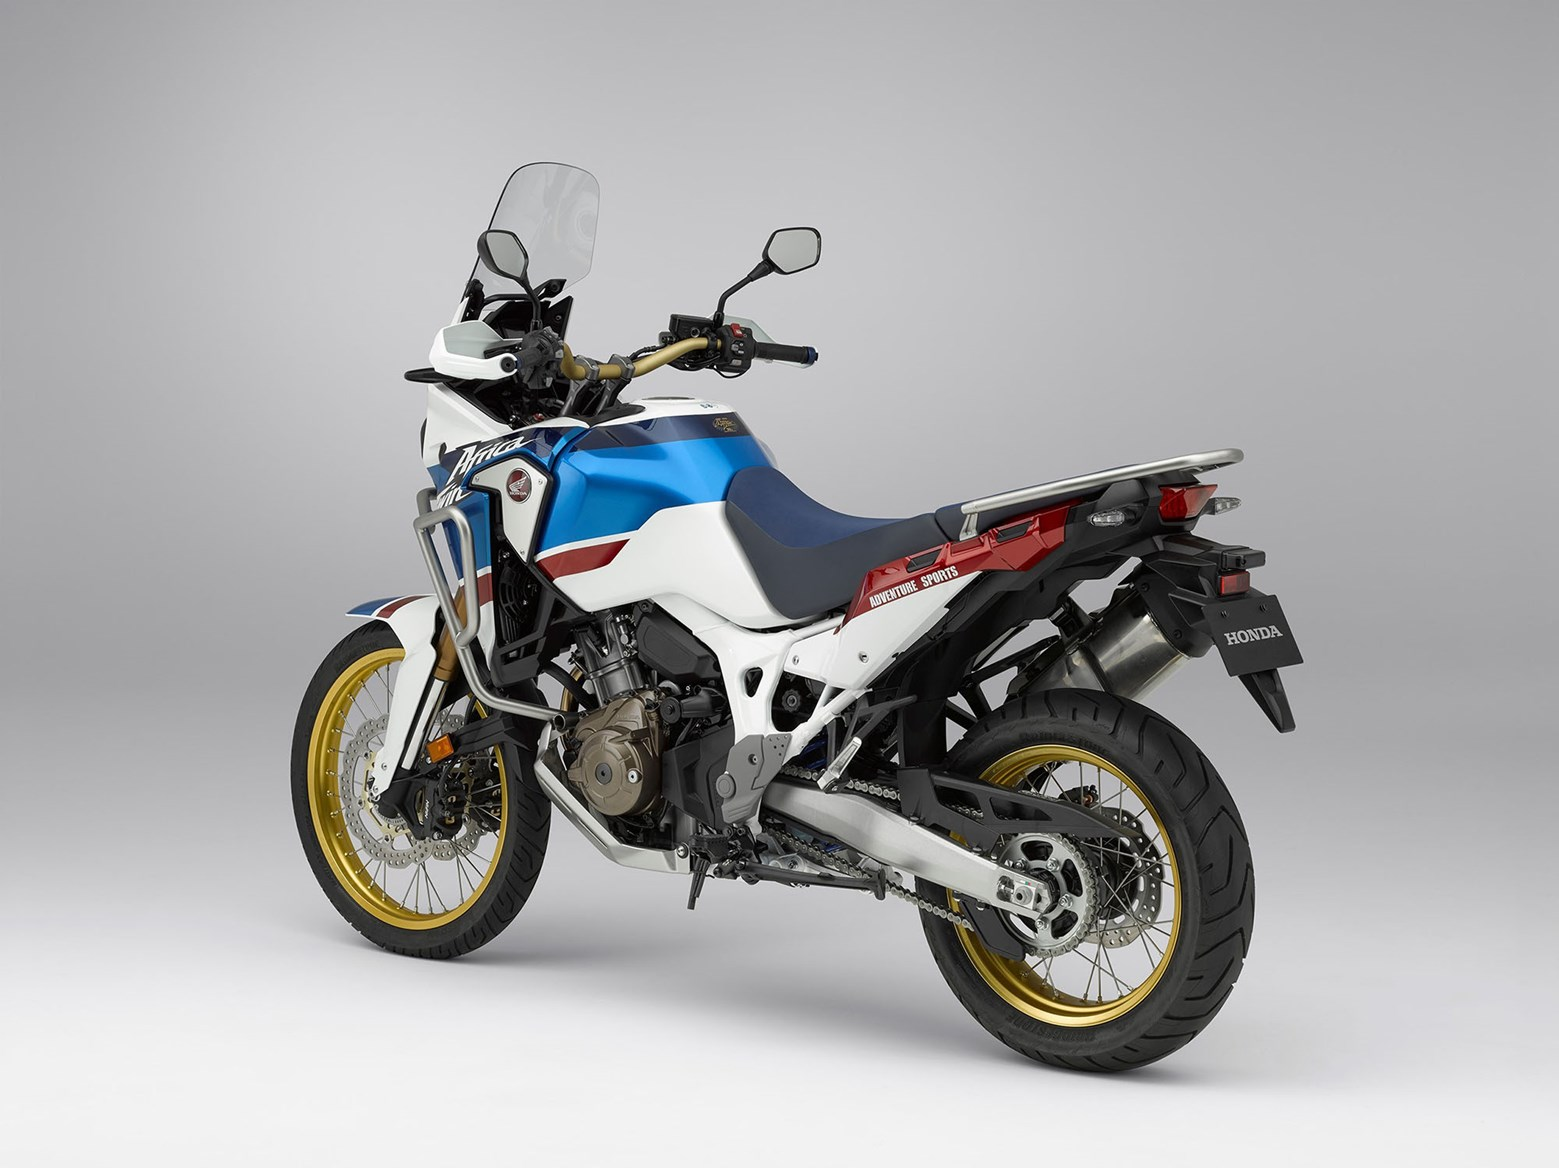 HONDA CRF1000L AFRICA TWIN Adventure Sports (2018-on) Review